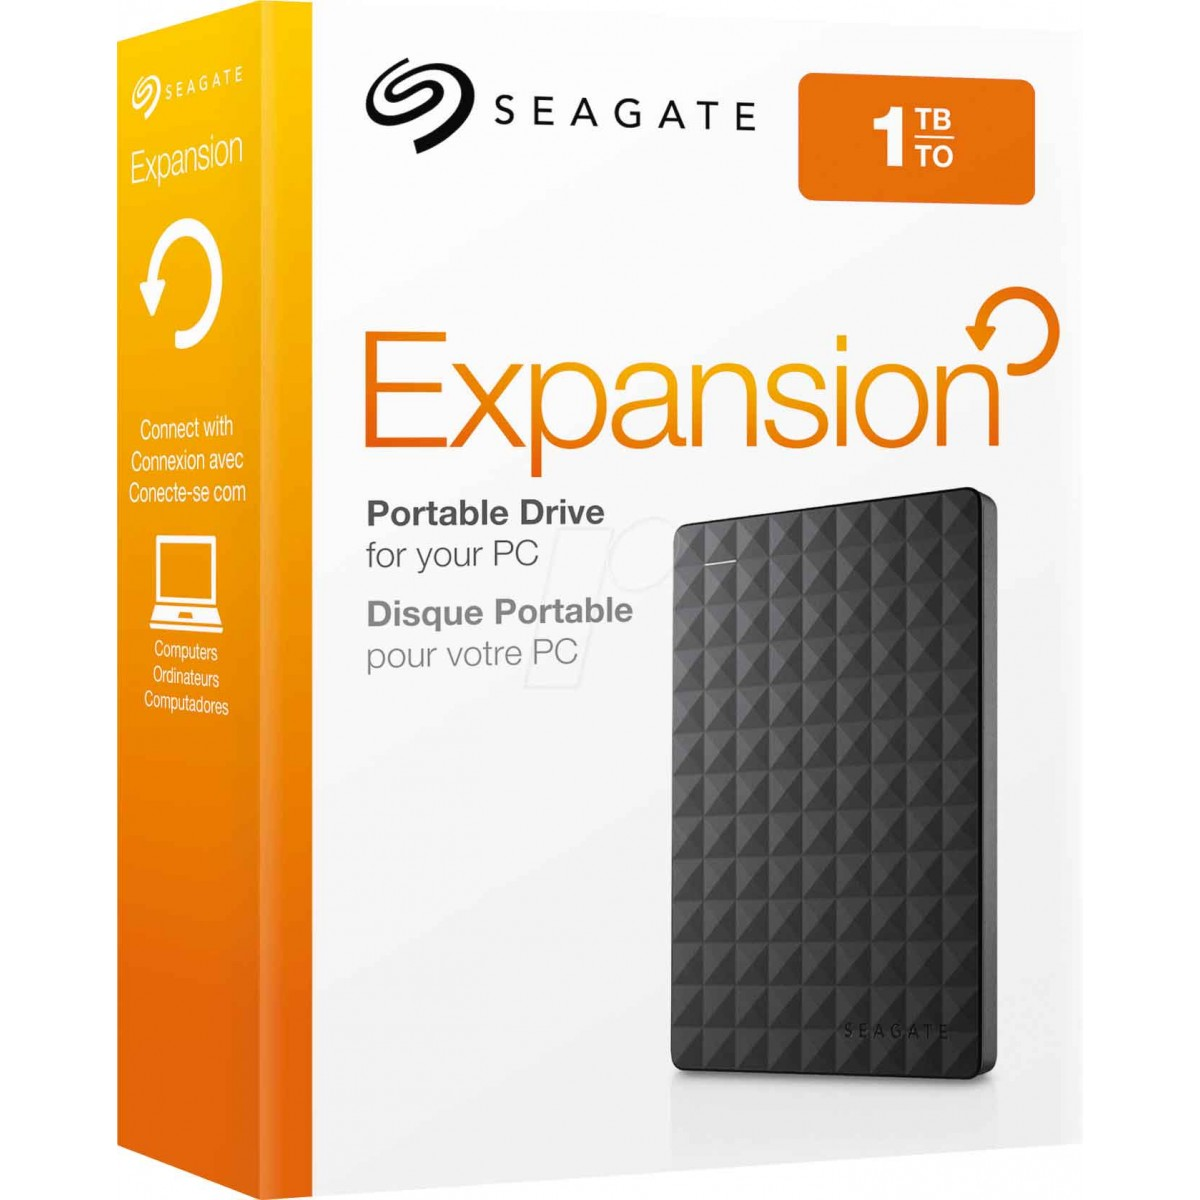 SEAGATE 1TB Expansion External USB3.0 Hard Drive